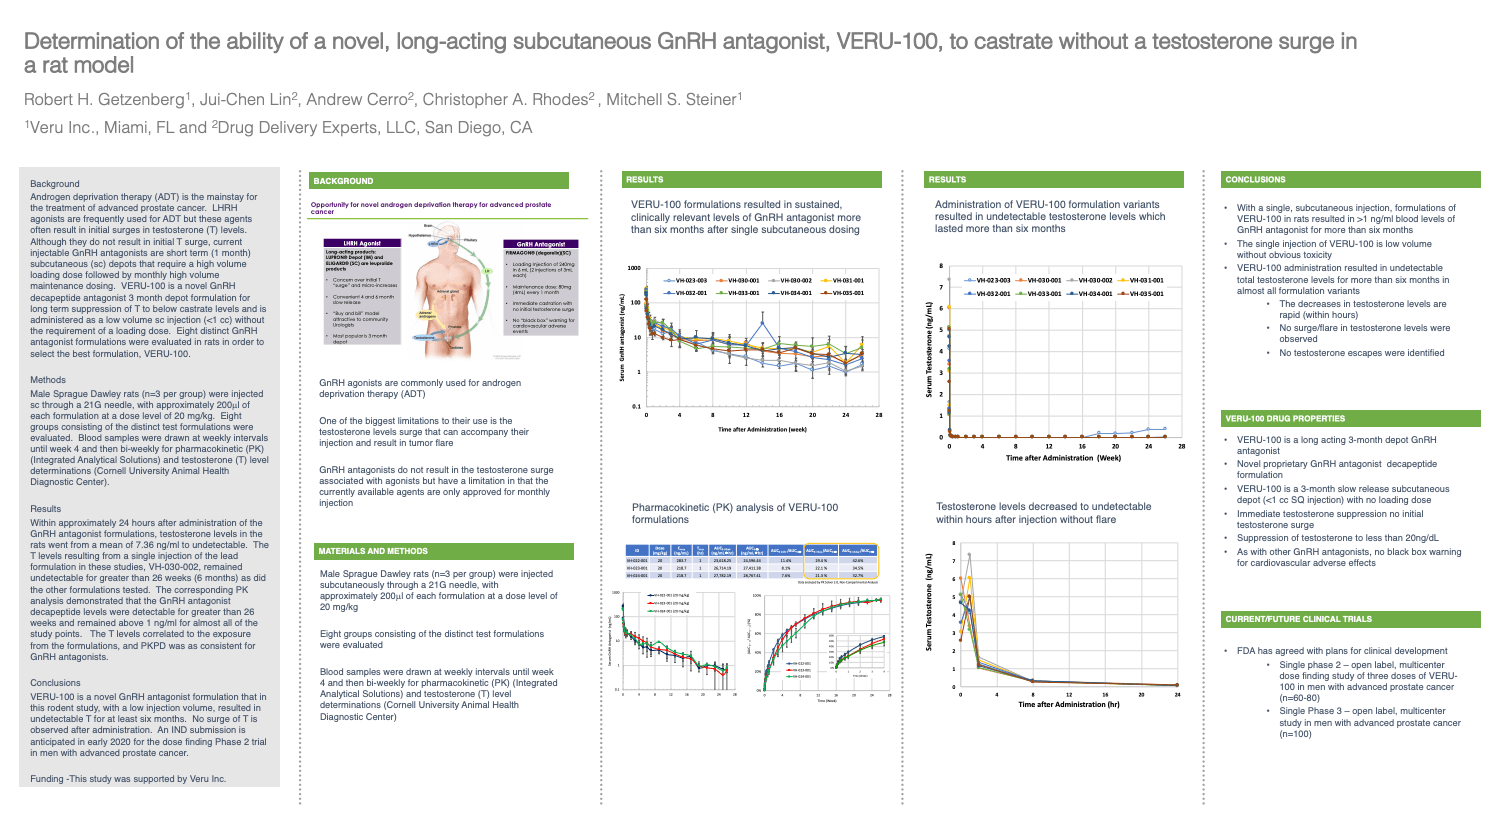 VERU-100 - Determination of the ability of a novel, long-acting subcutaneous GnRH antagonist